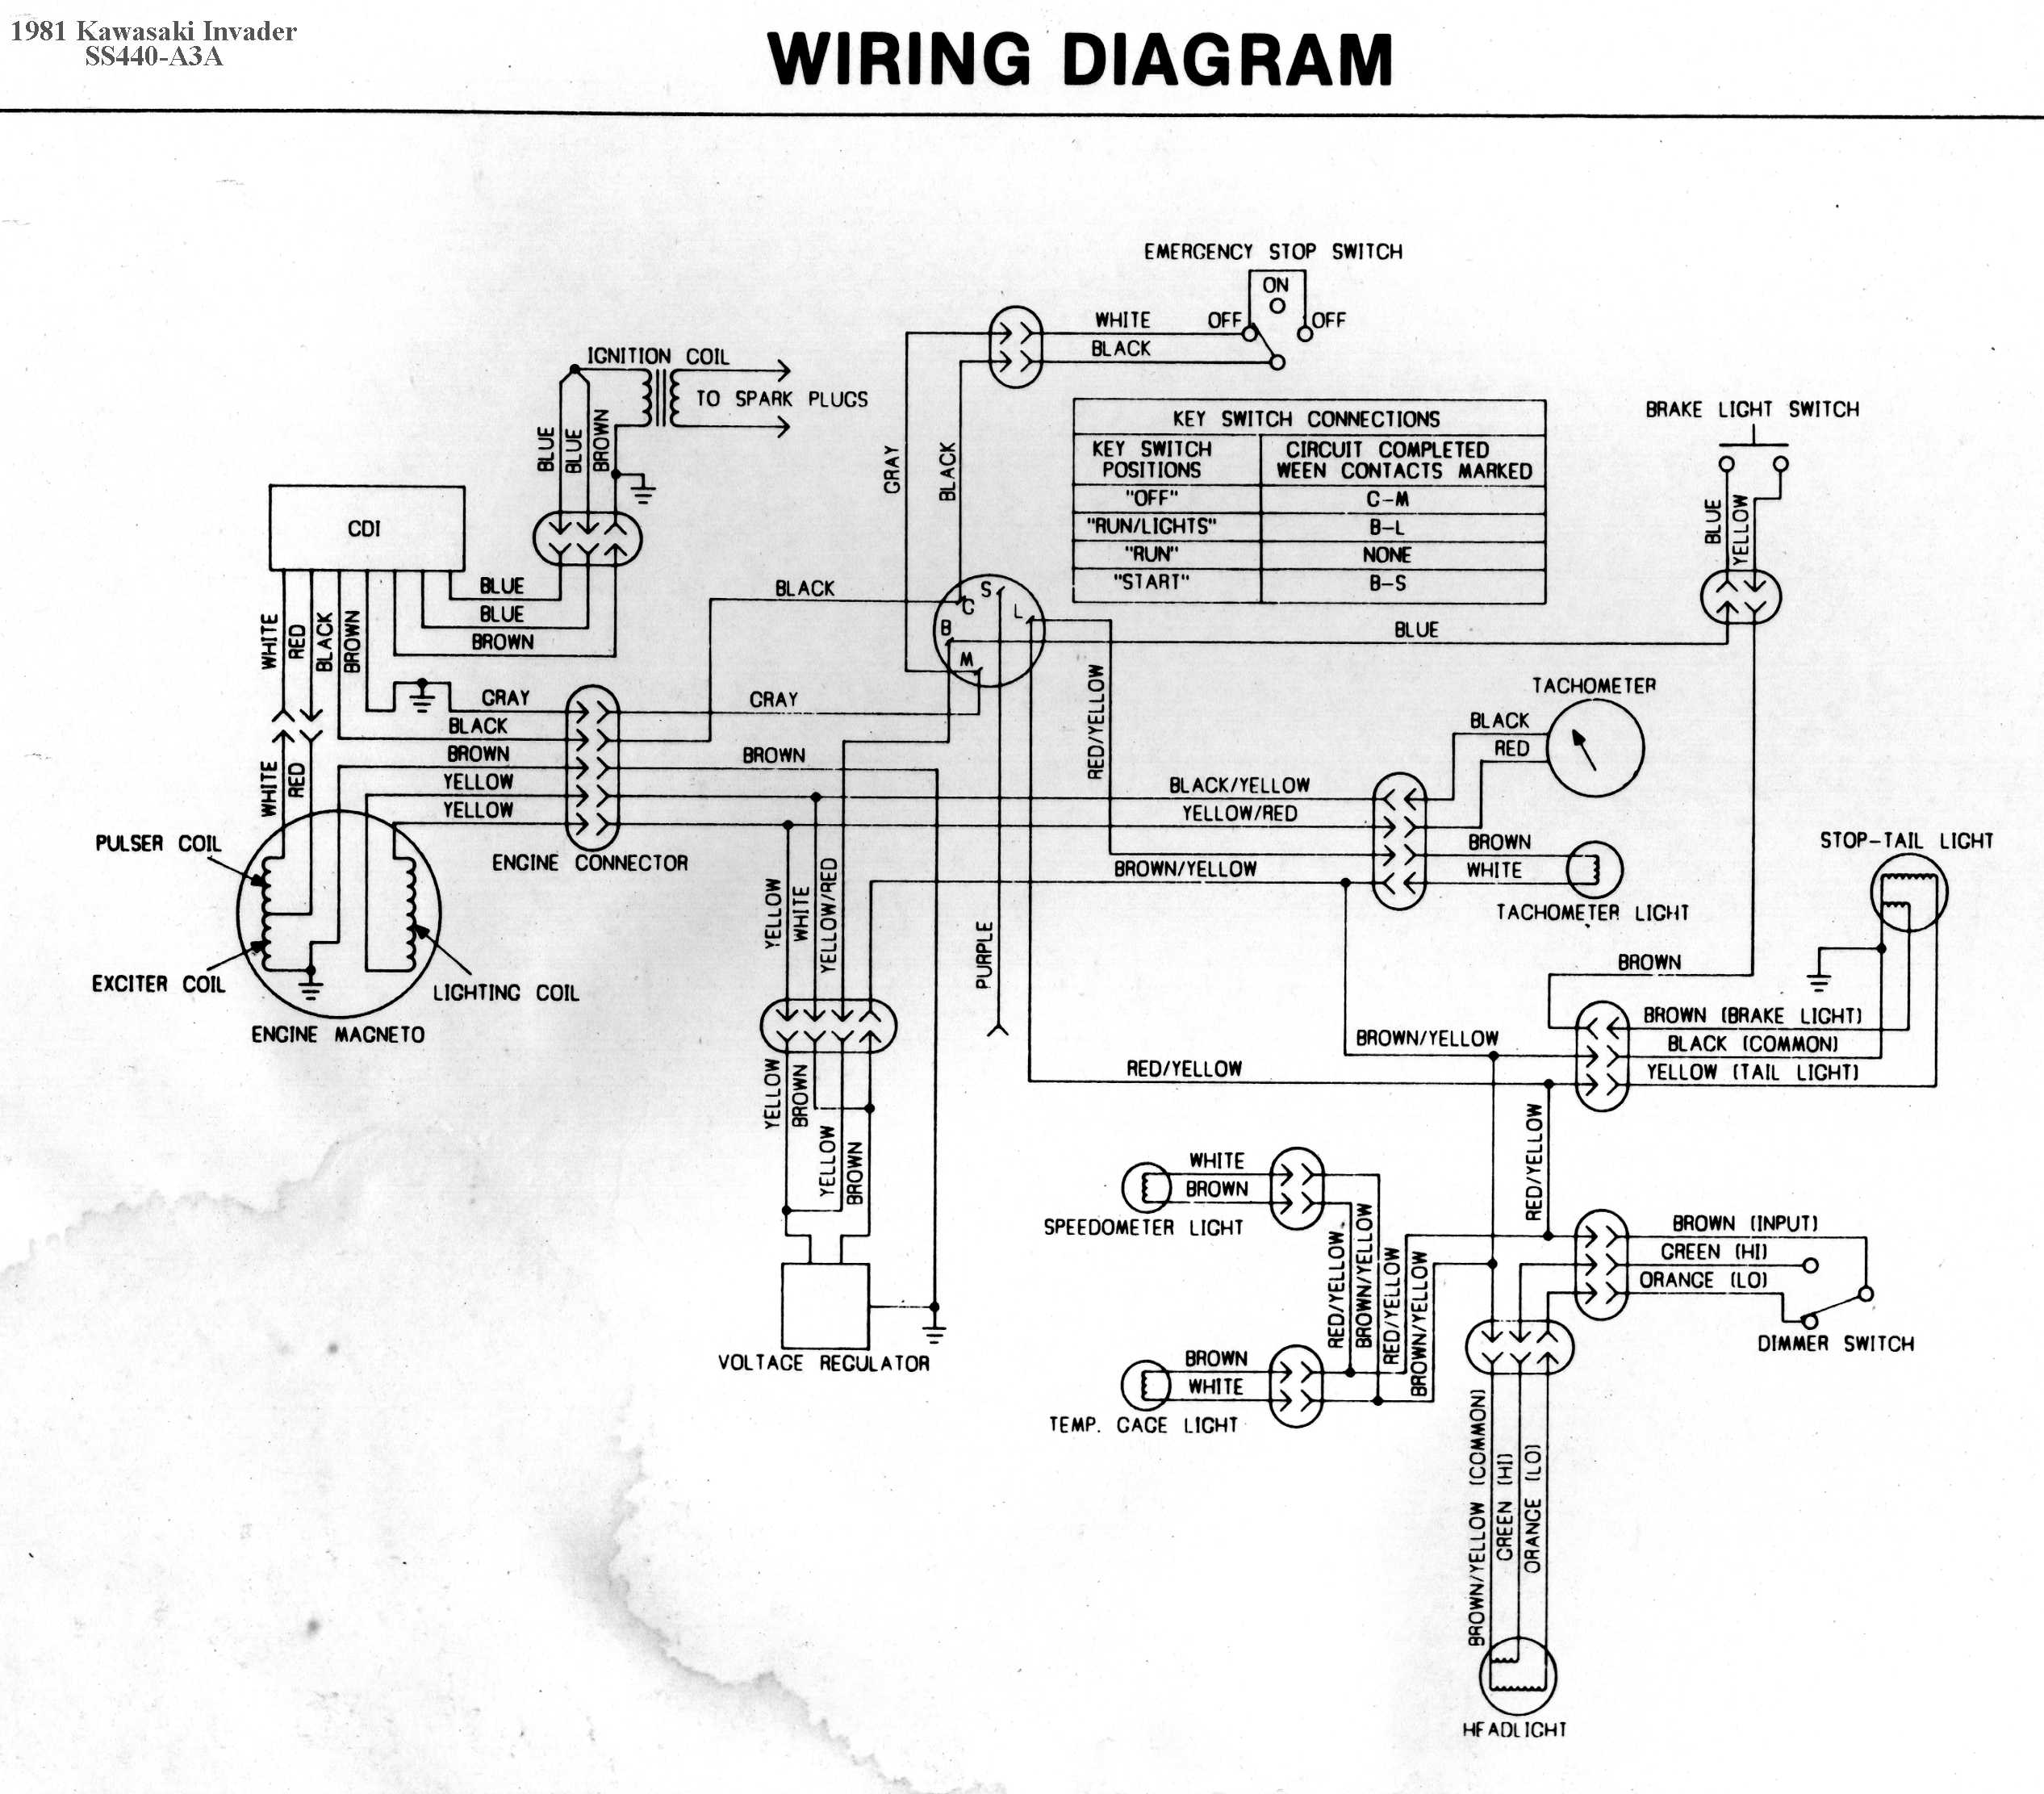 medium resolution of snowmobile wiring diagram schema diagram database snowmobile wiring diagrams snowmobile wiring diagram